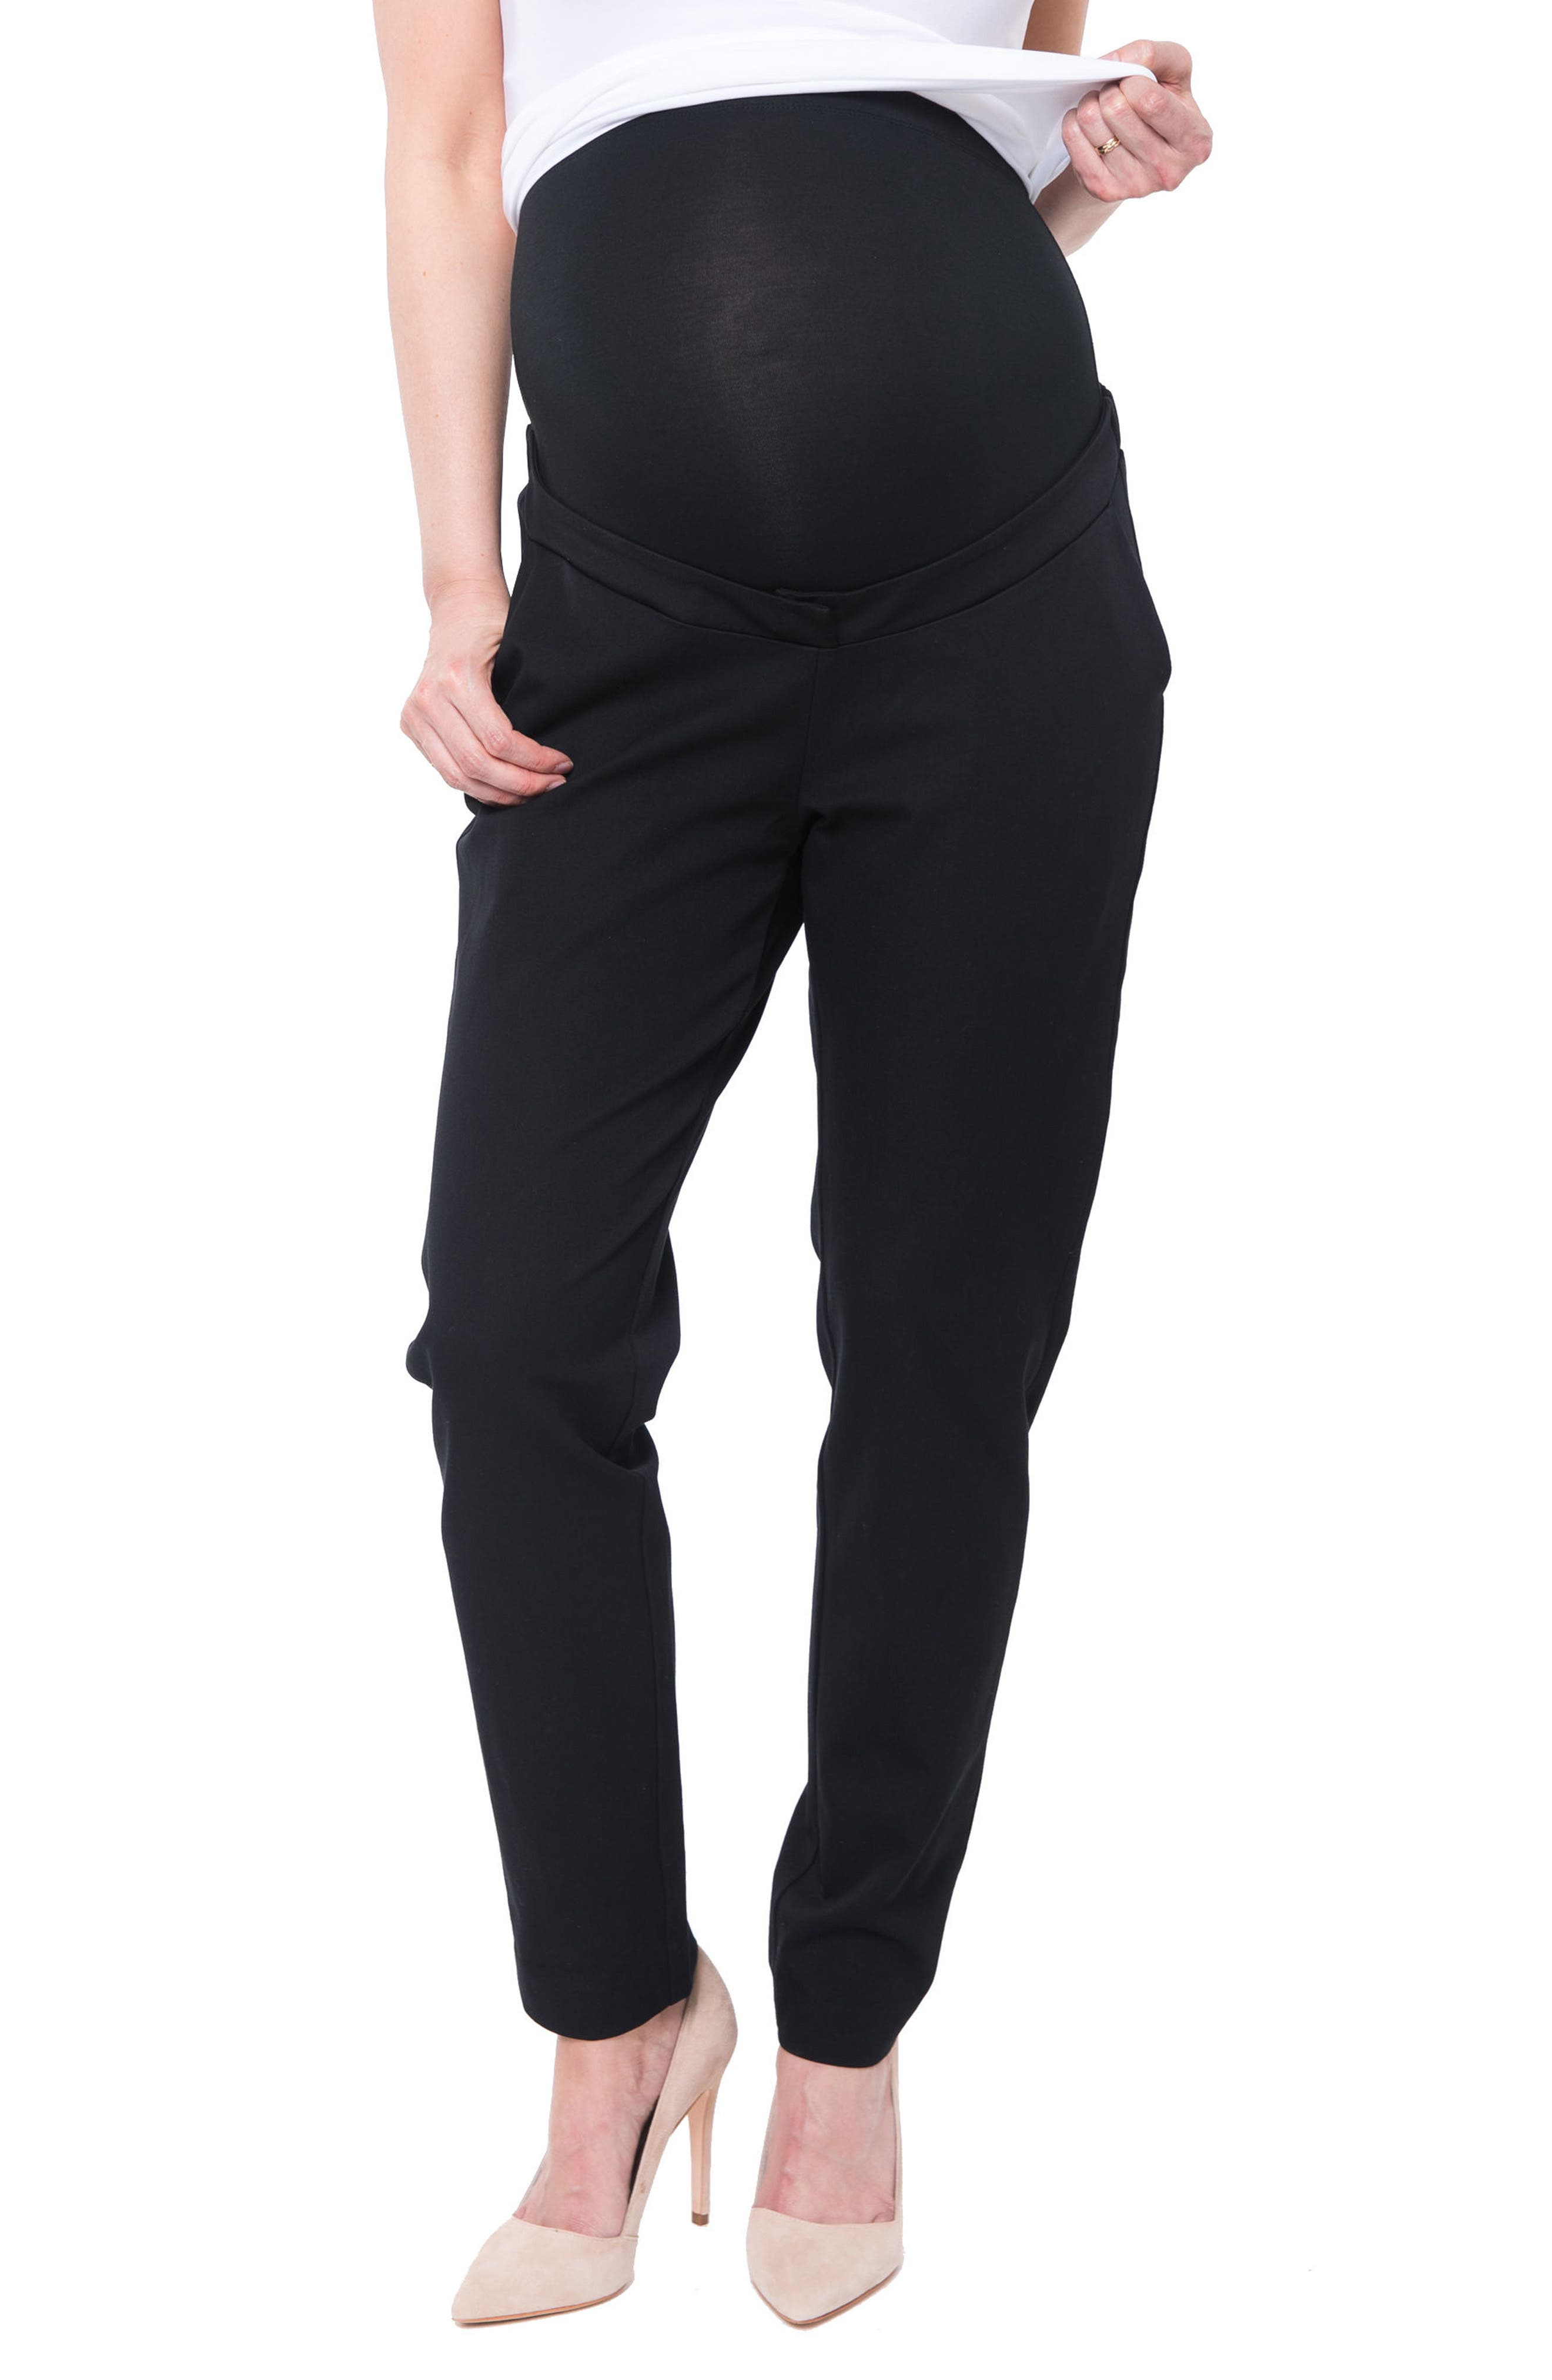 Women's Nom Maternity Natalie Over The Belly Maternity Pants